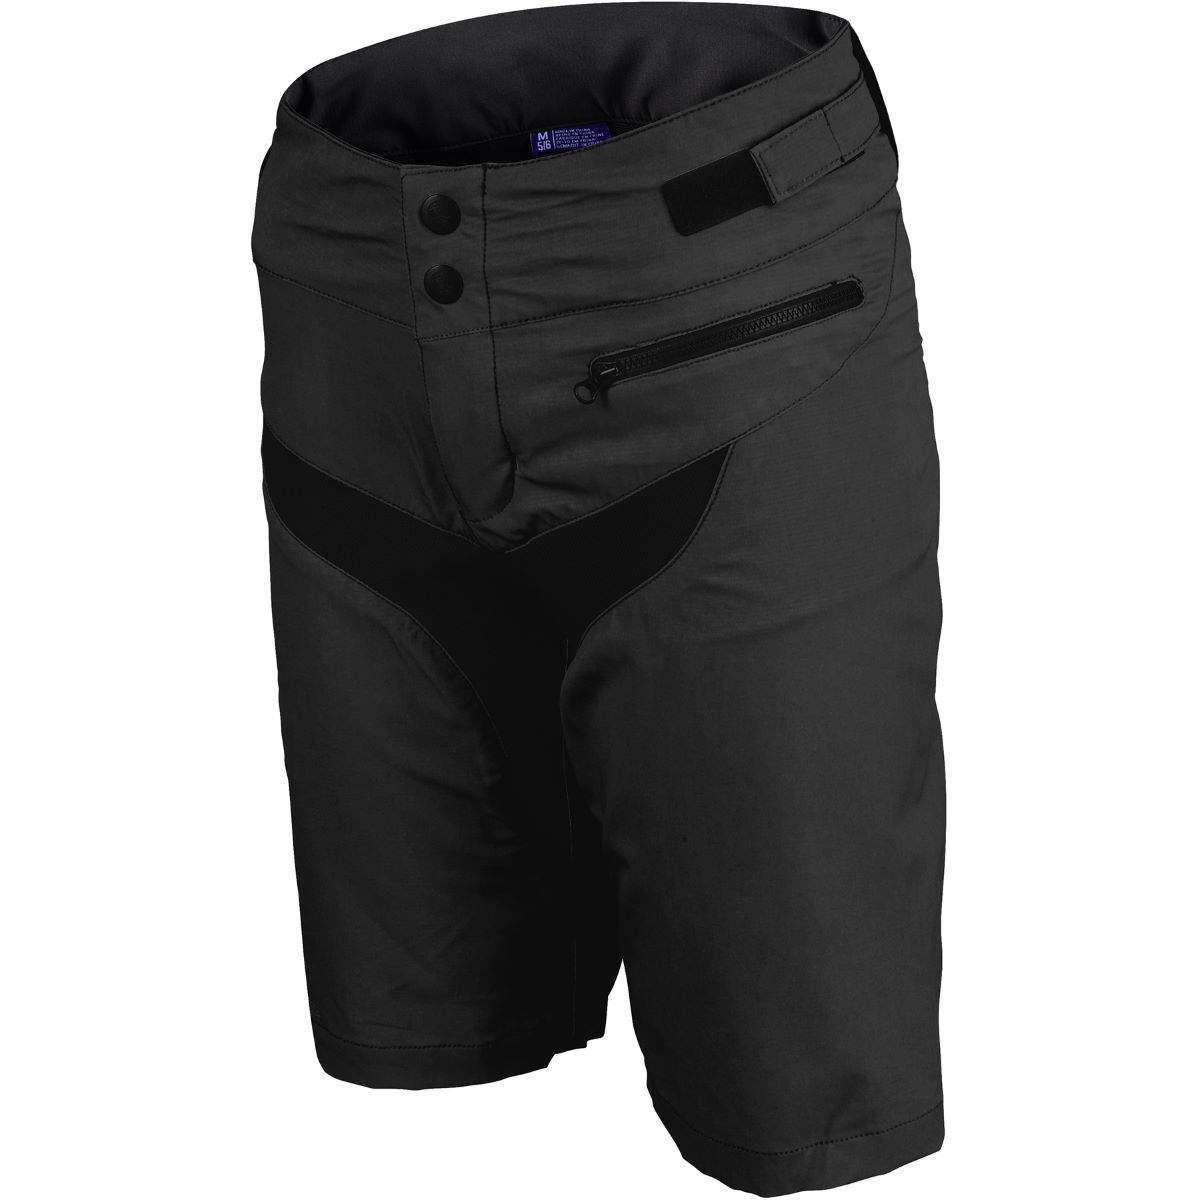 Short Femme Troy Lee Designs Skyline Shell - S Noir Shorts amples